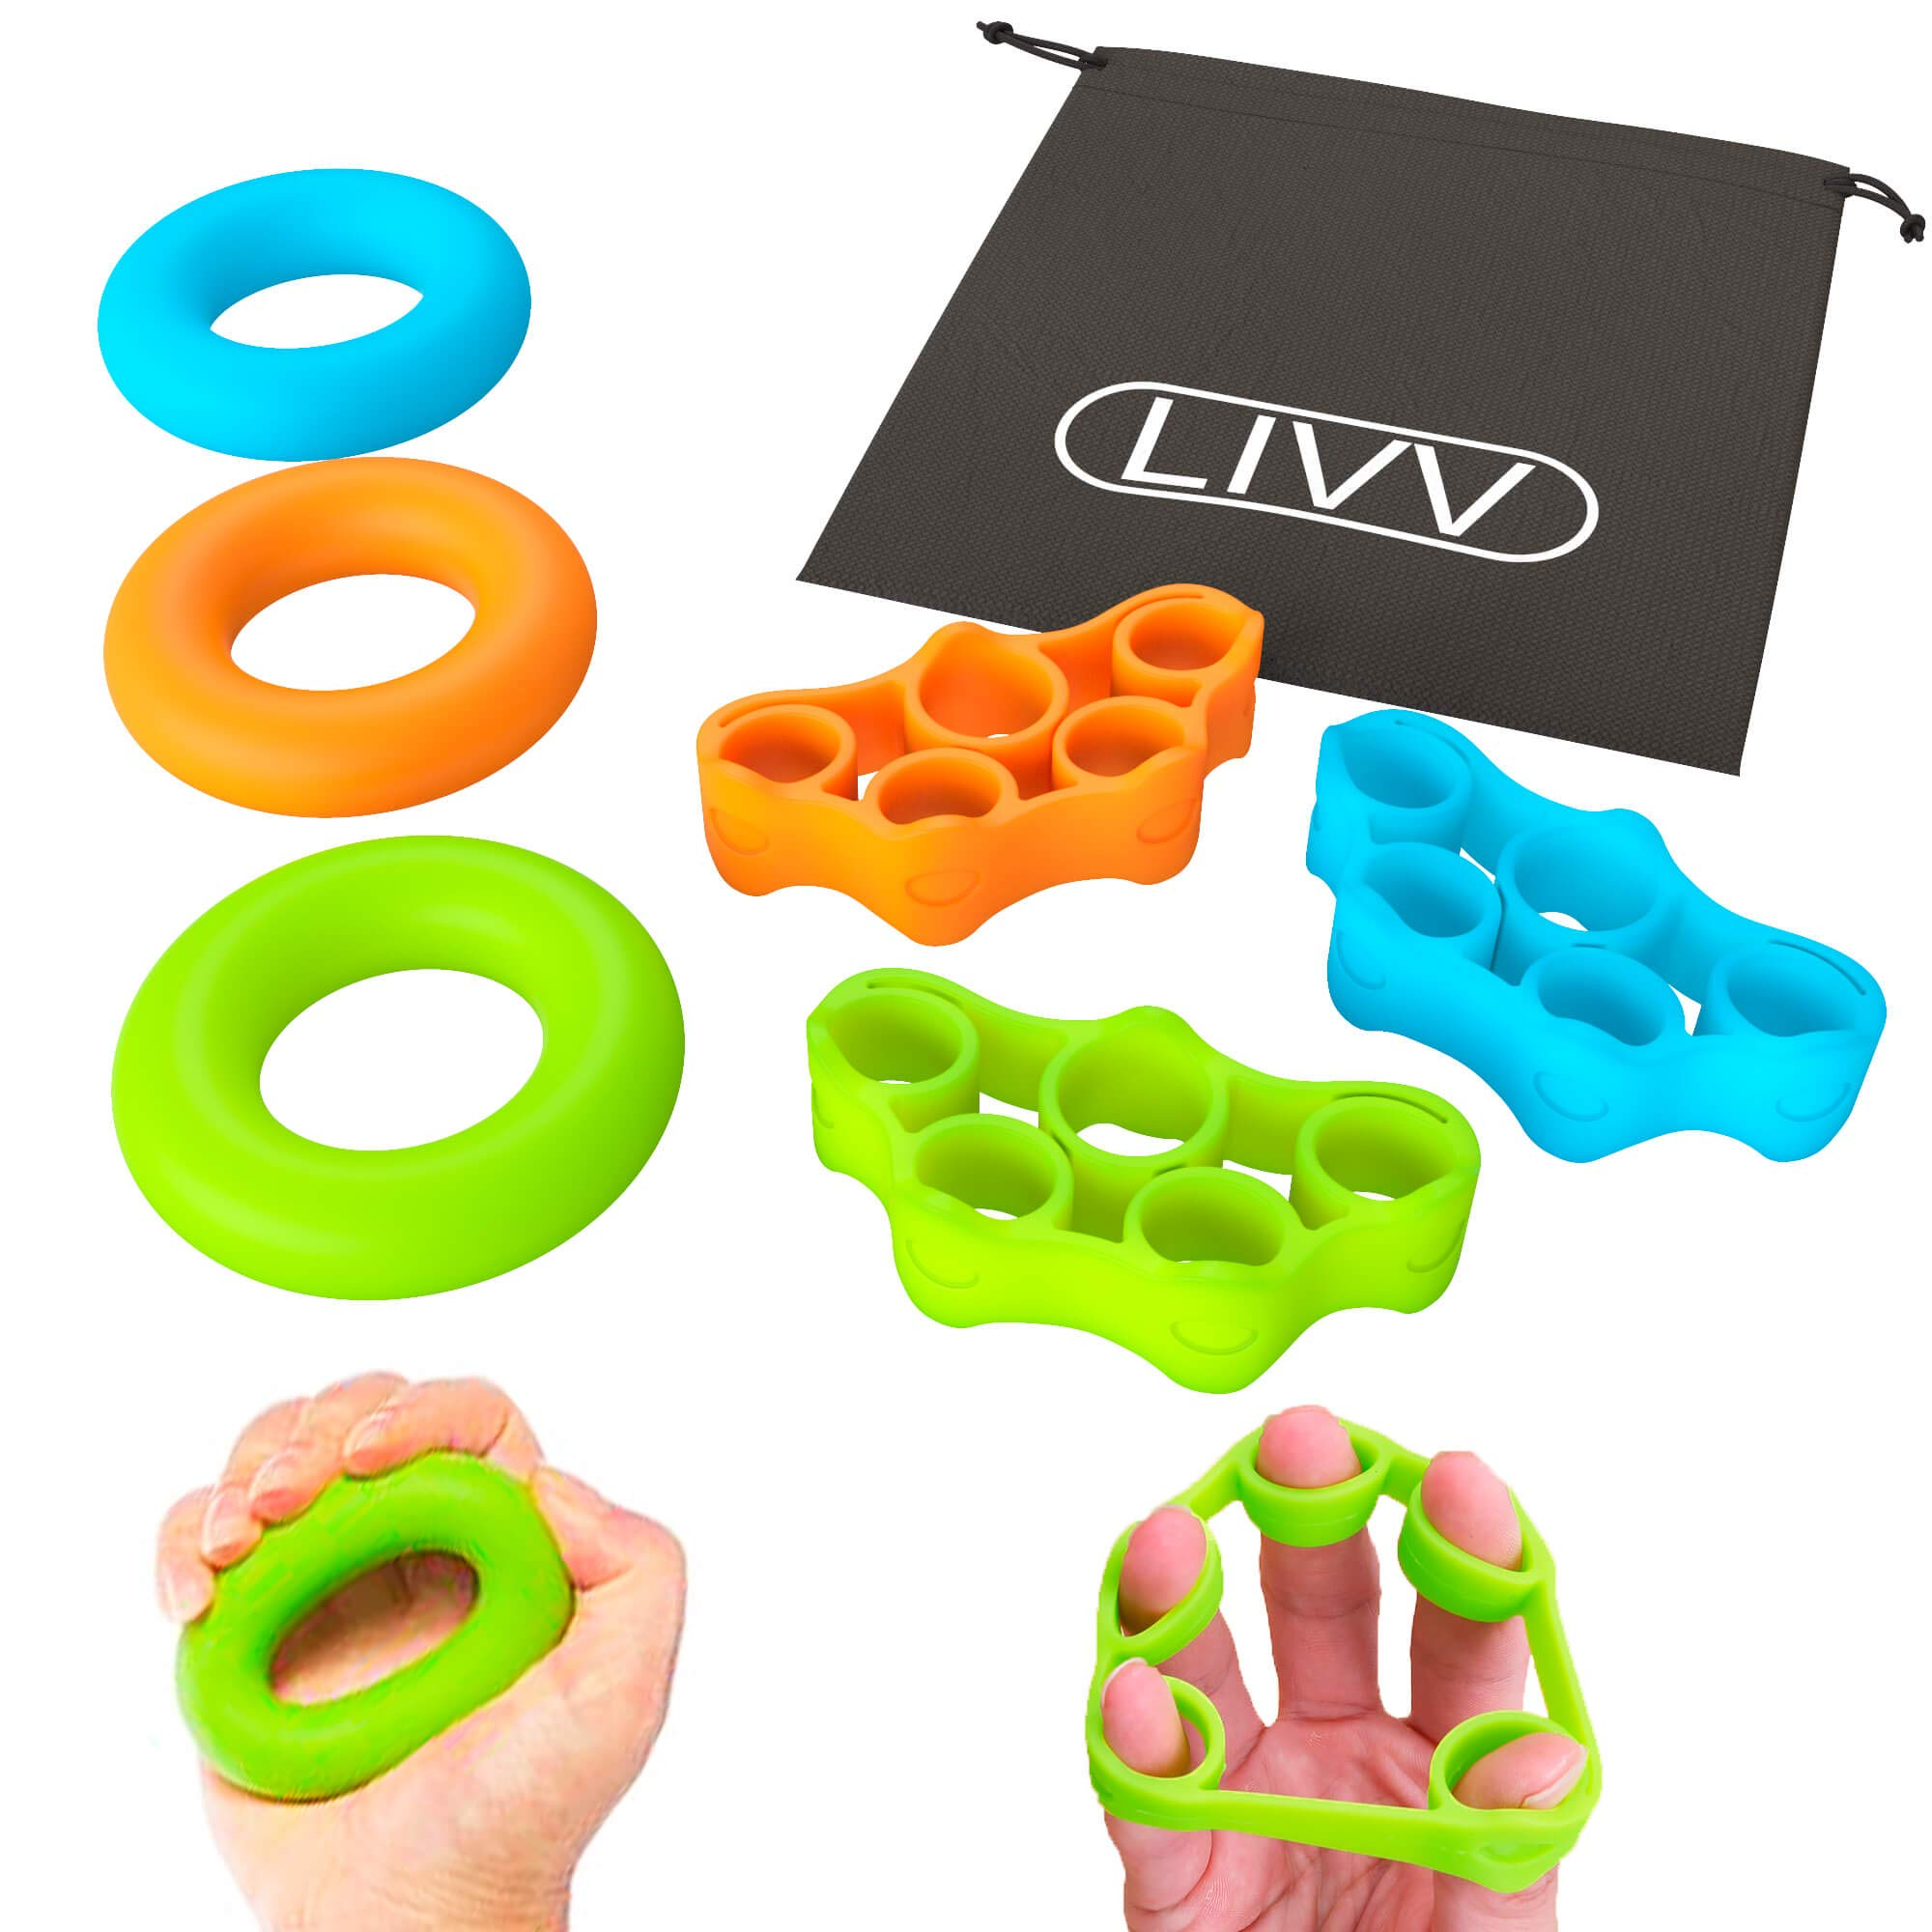 LIVV FITNESS Premium Finger Stretcher and Grip Strength Trainer Kit - Strengthens Fingers, Forearm, Wrist and Grip - 3 Level Finger Resistance Bands and Hand Grip Workout Rings with Carry Bag (6 Pack) by LIVV FITNESS (Image #1)